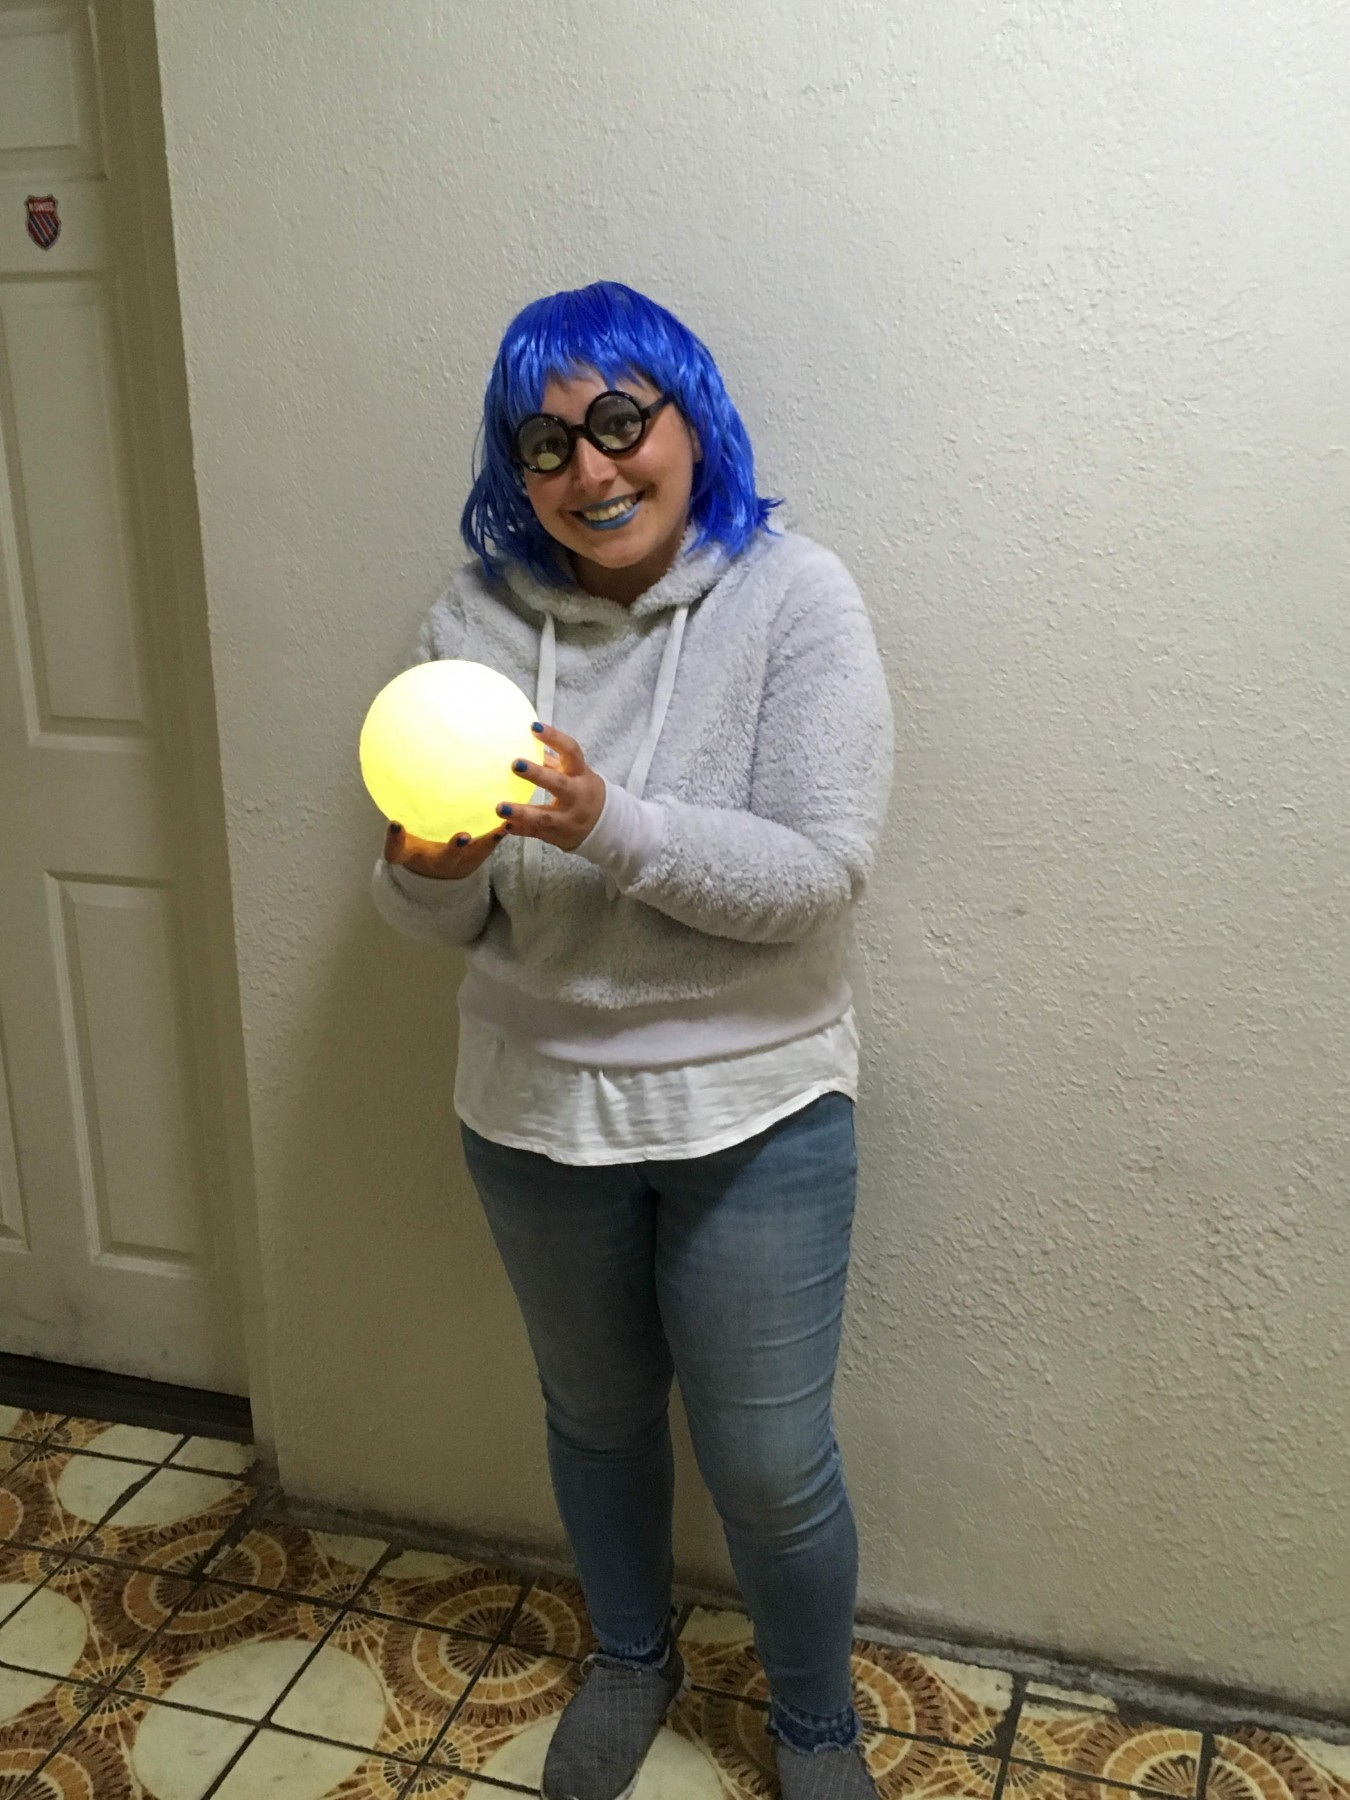 The best prop for a Inside Out costume